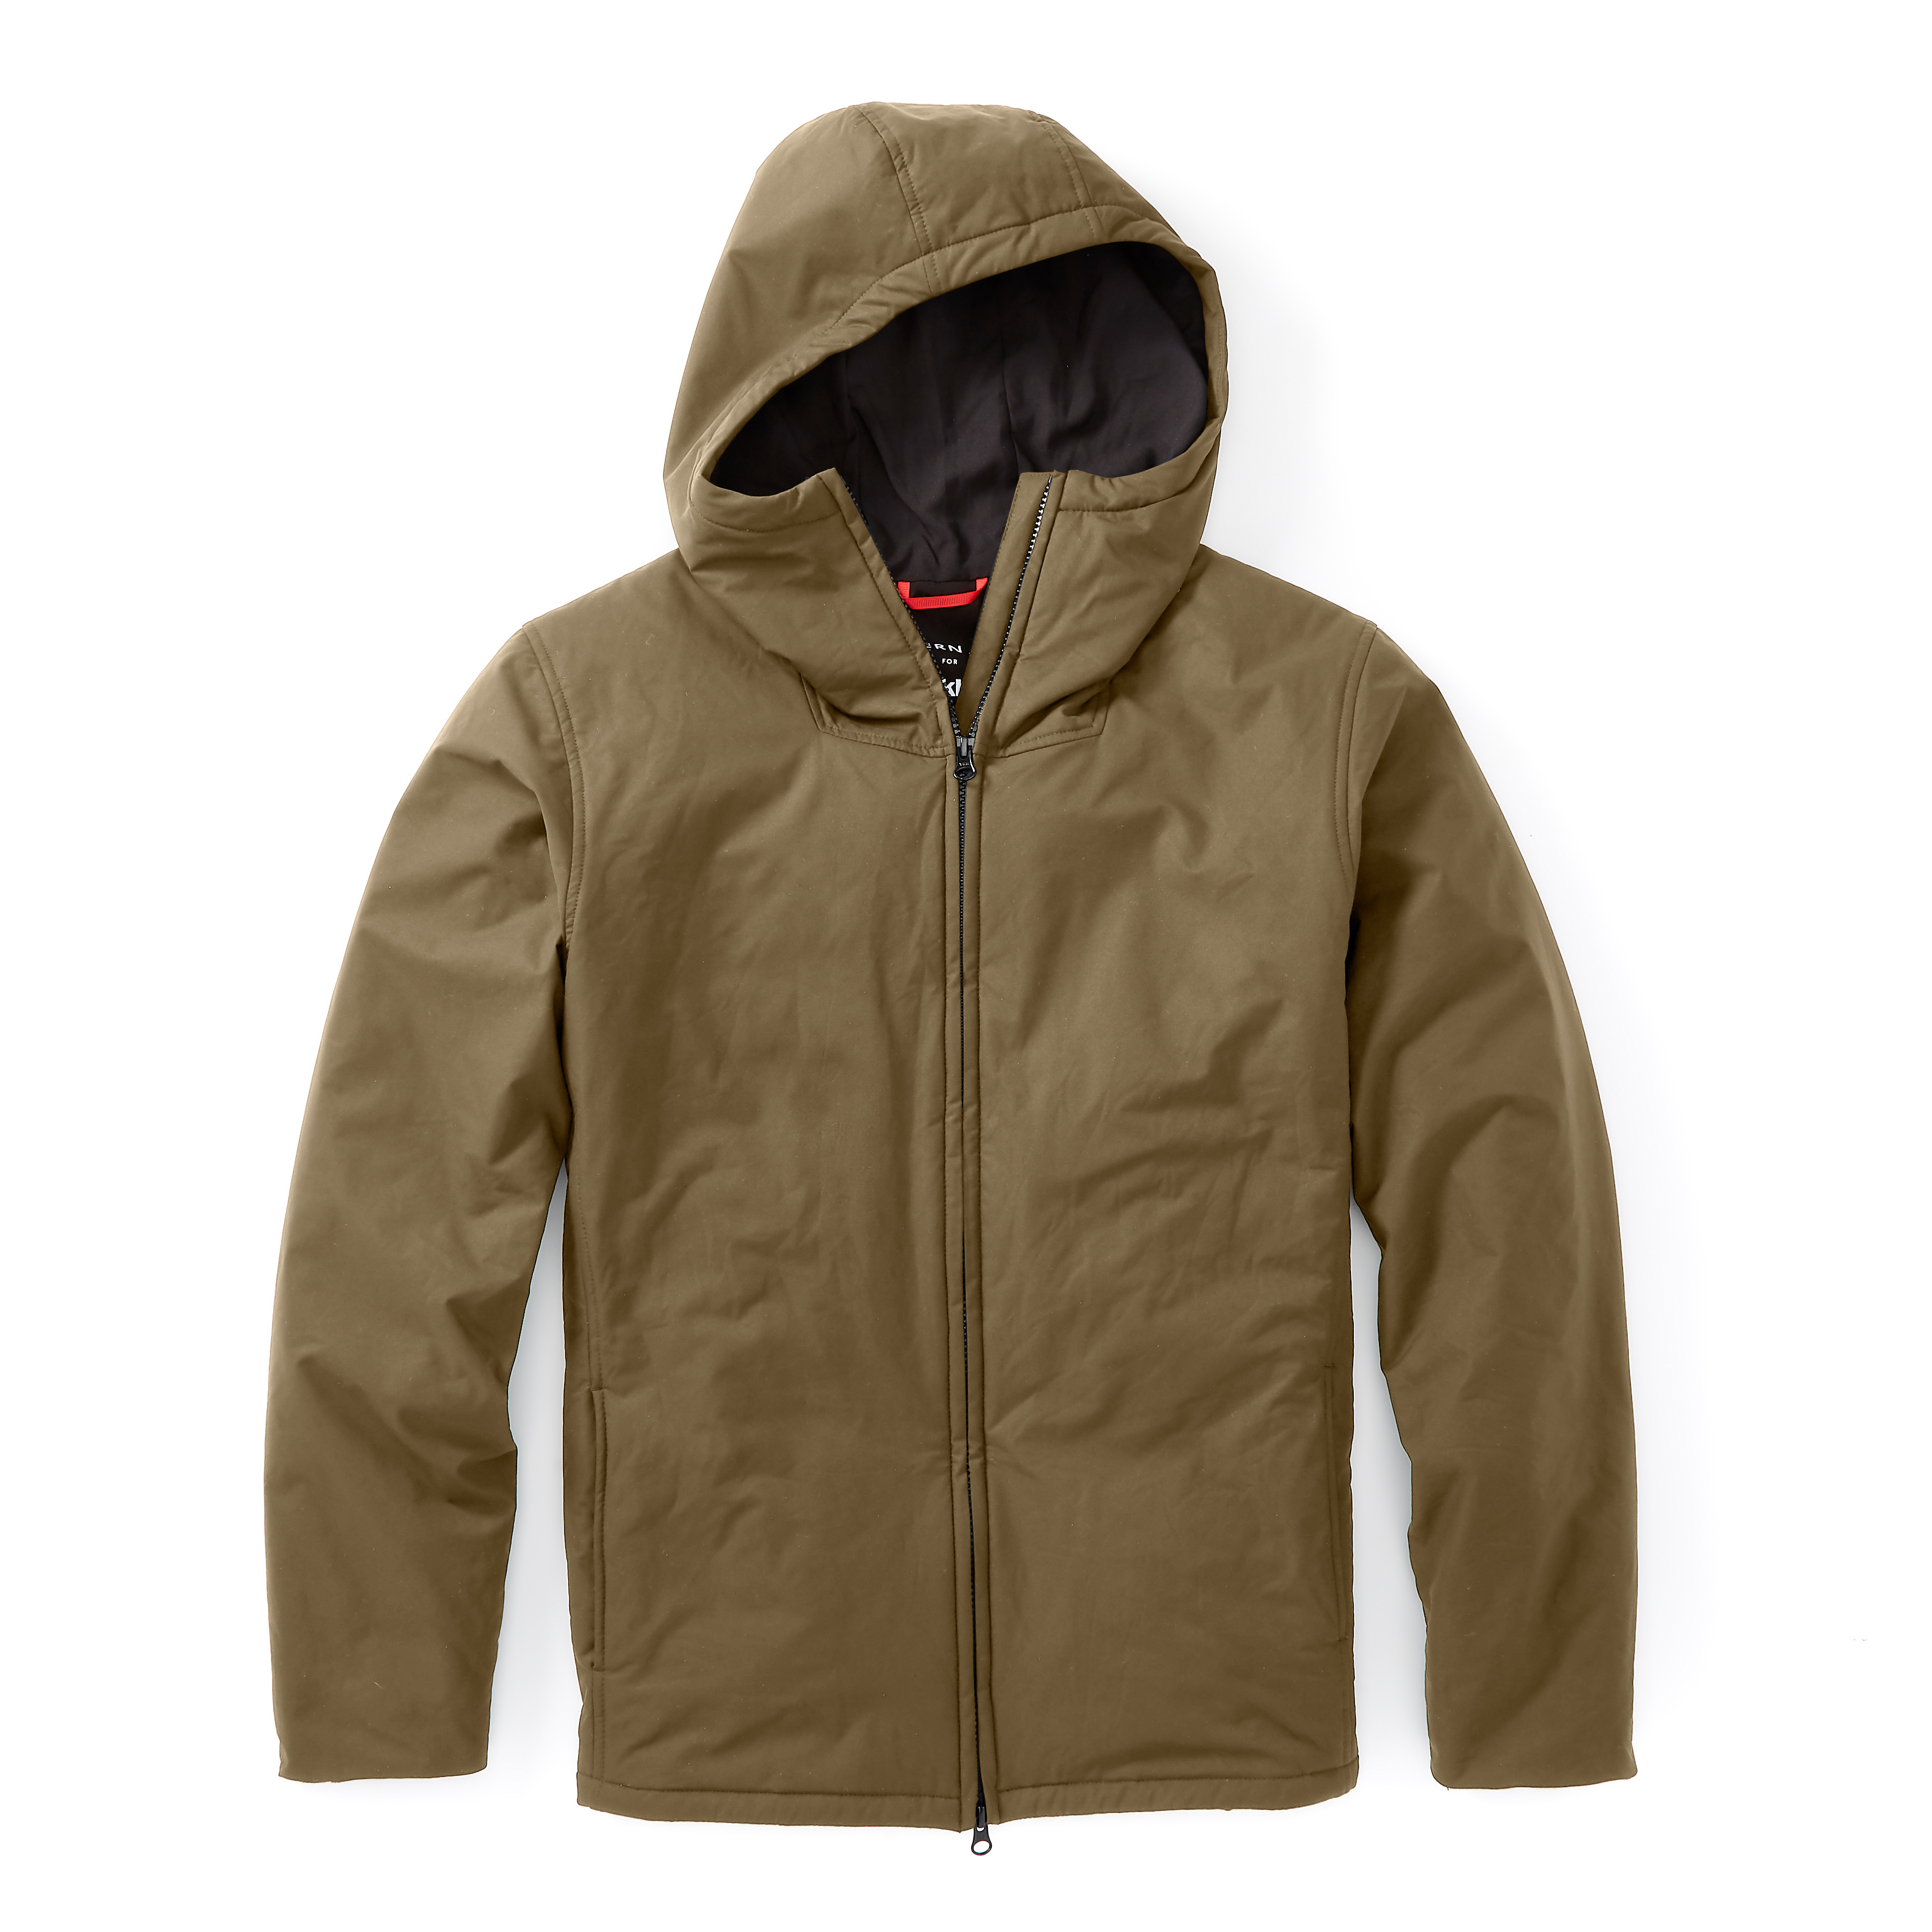 6a2f90d65 The Airloft Jacket -Exclusive